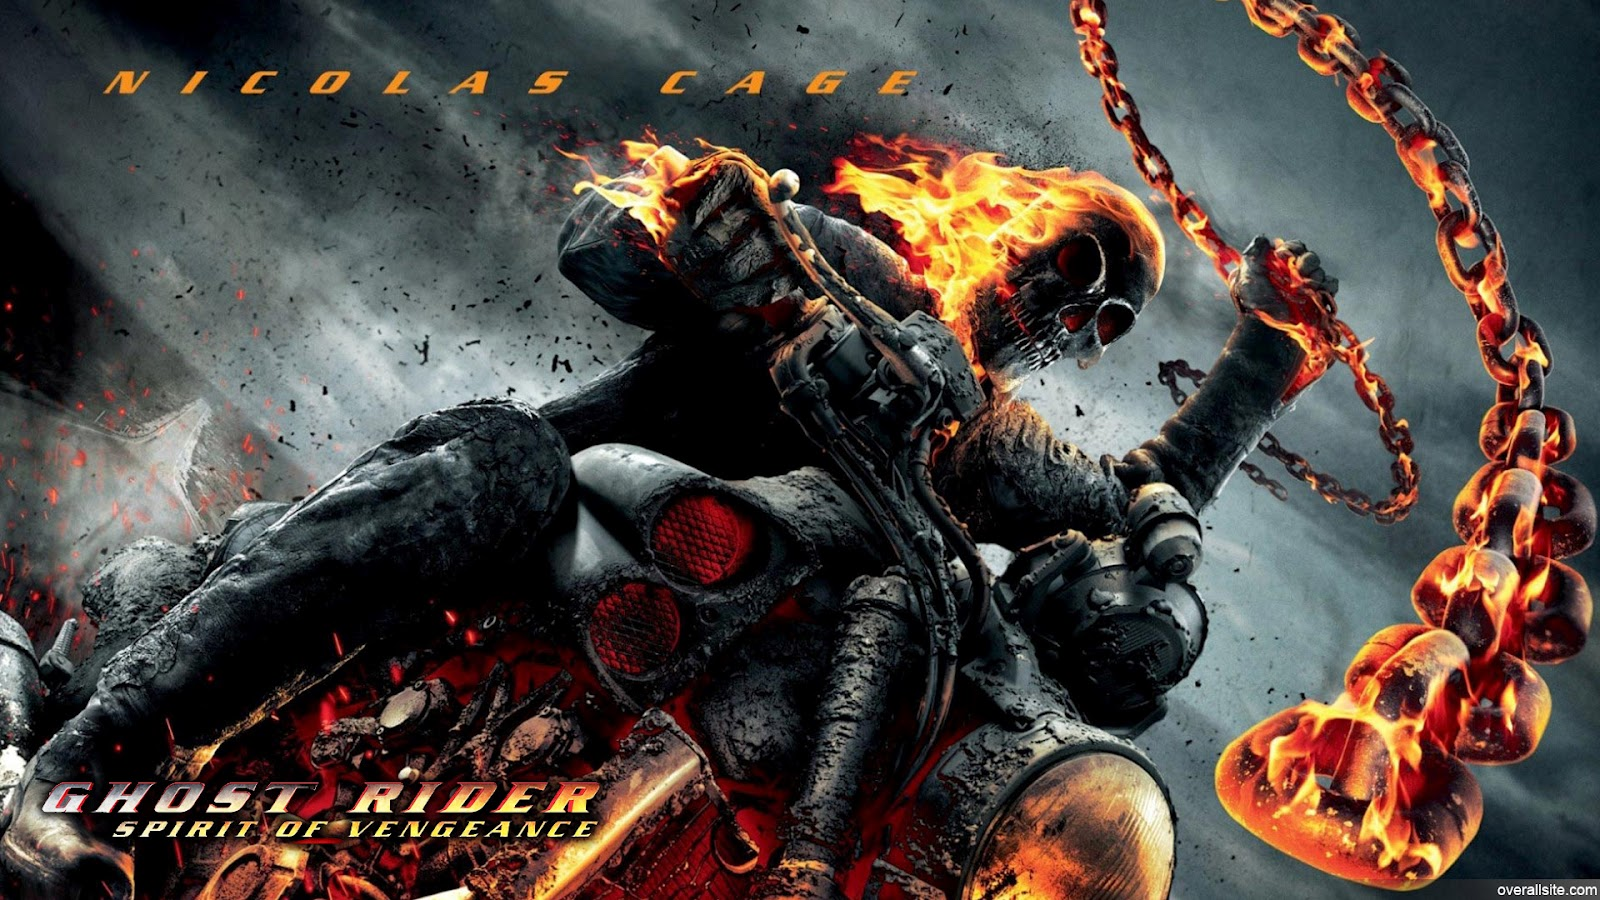 Ghost Rider 2 Spirit of Vengeance Wallpaper Graphic and Vector 1600x900